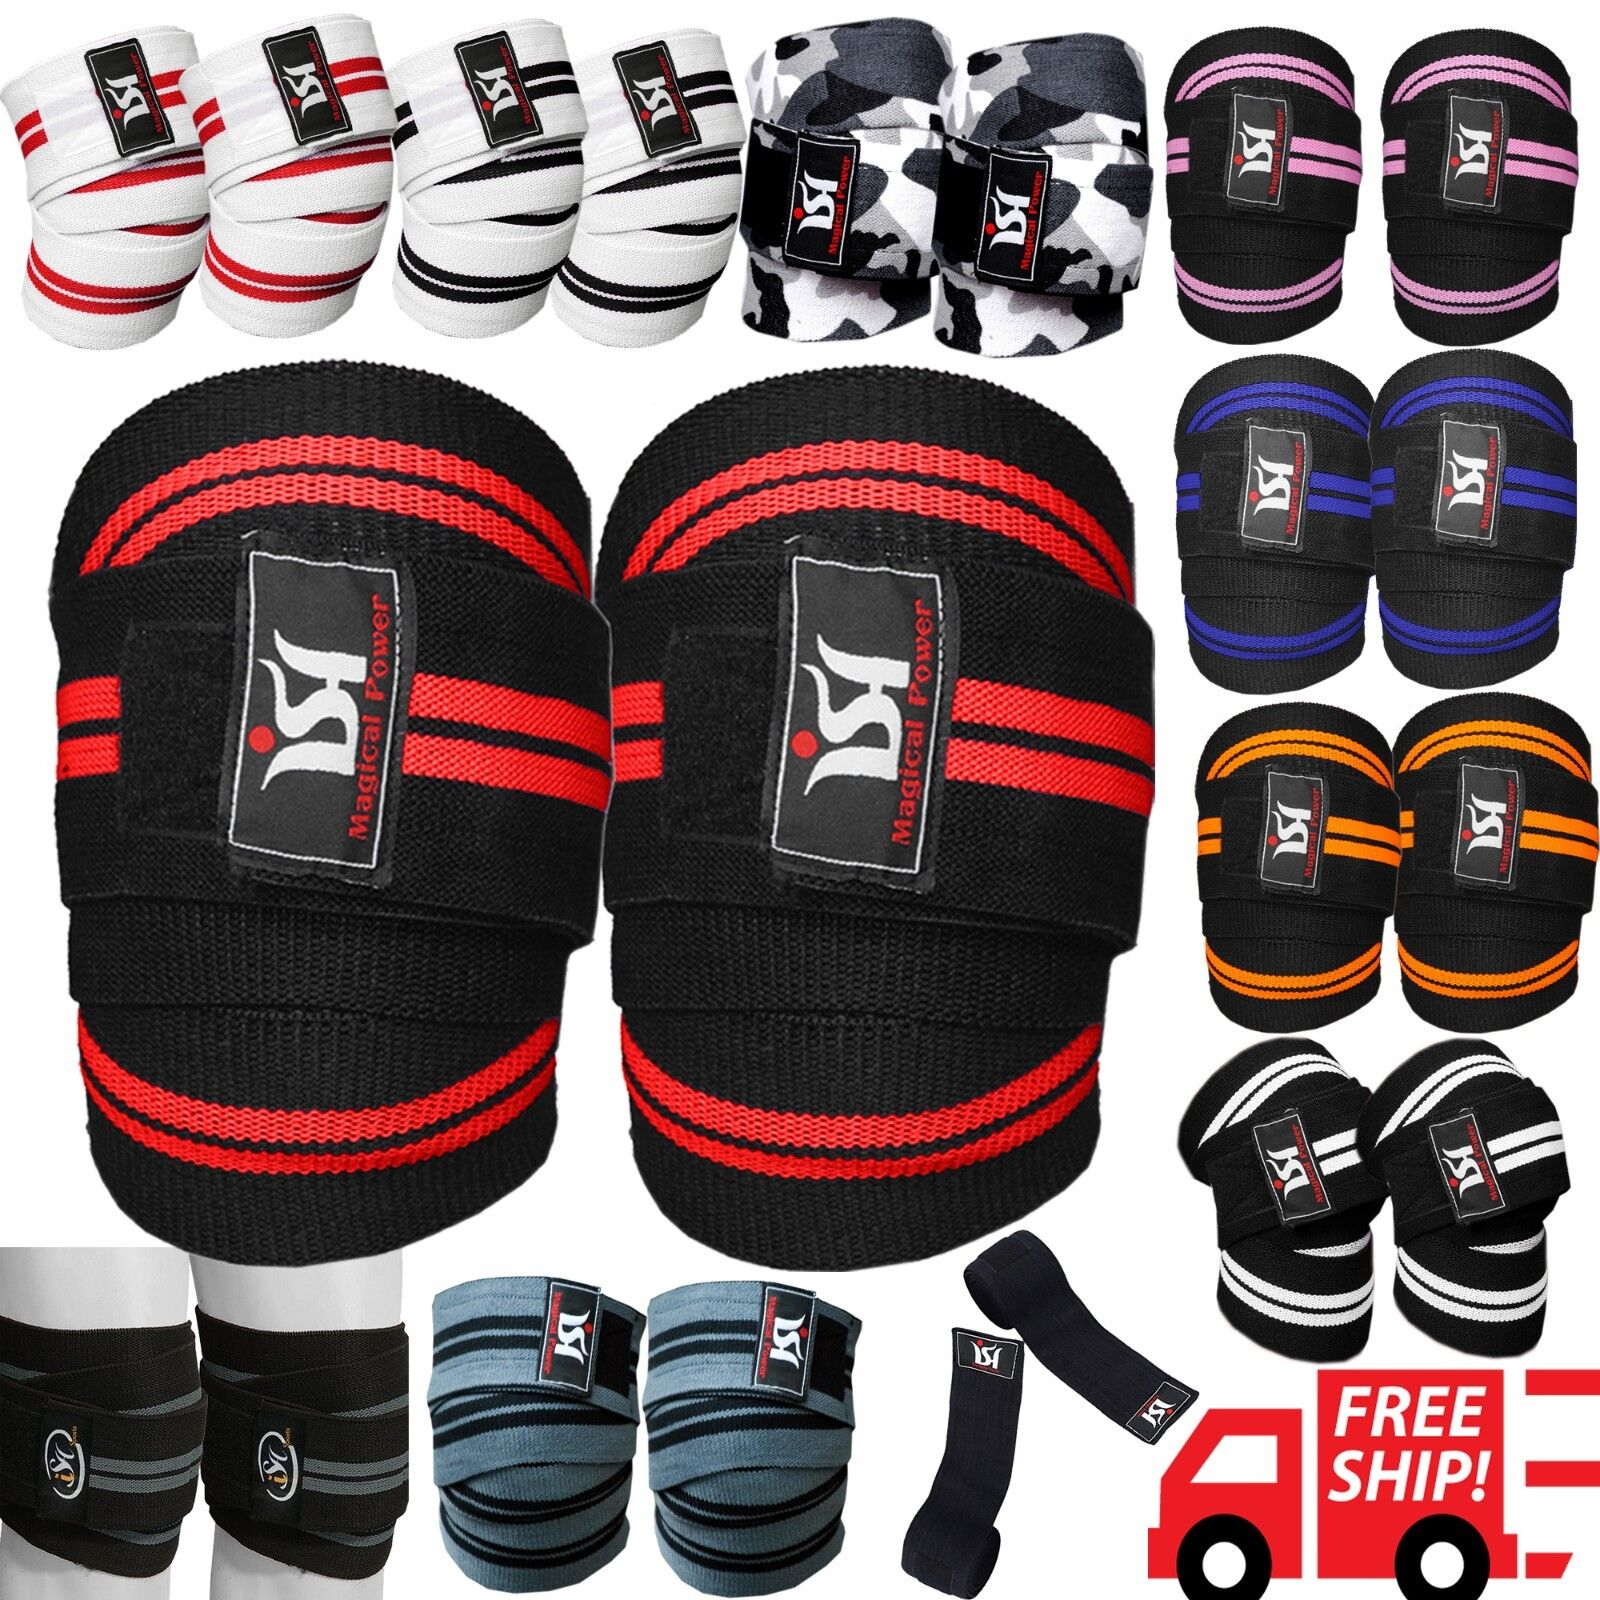 Gym Weight lifting Knee Wraps Bandage Straps Guard Powerlift